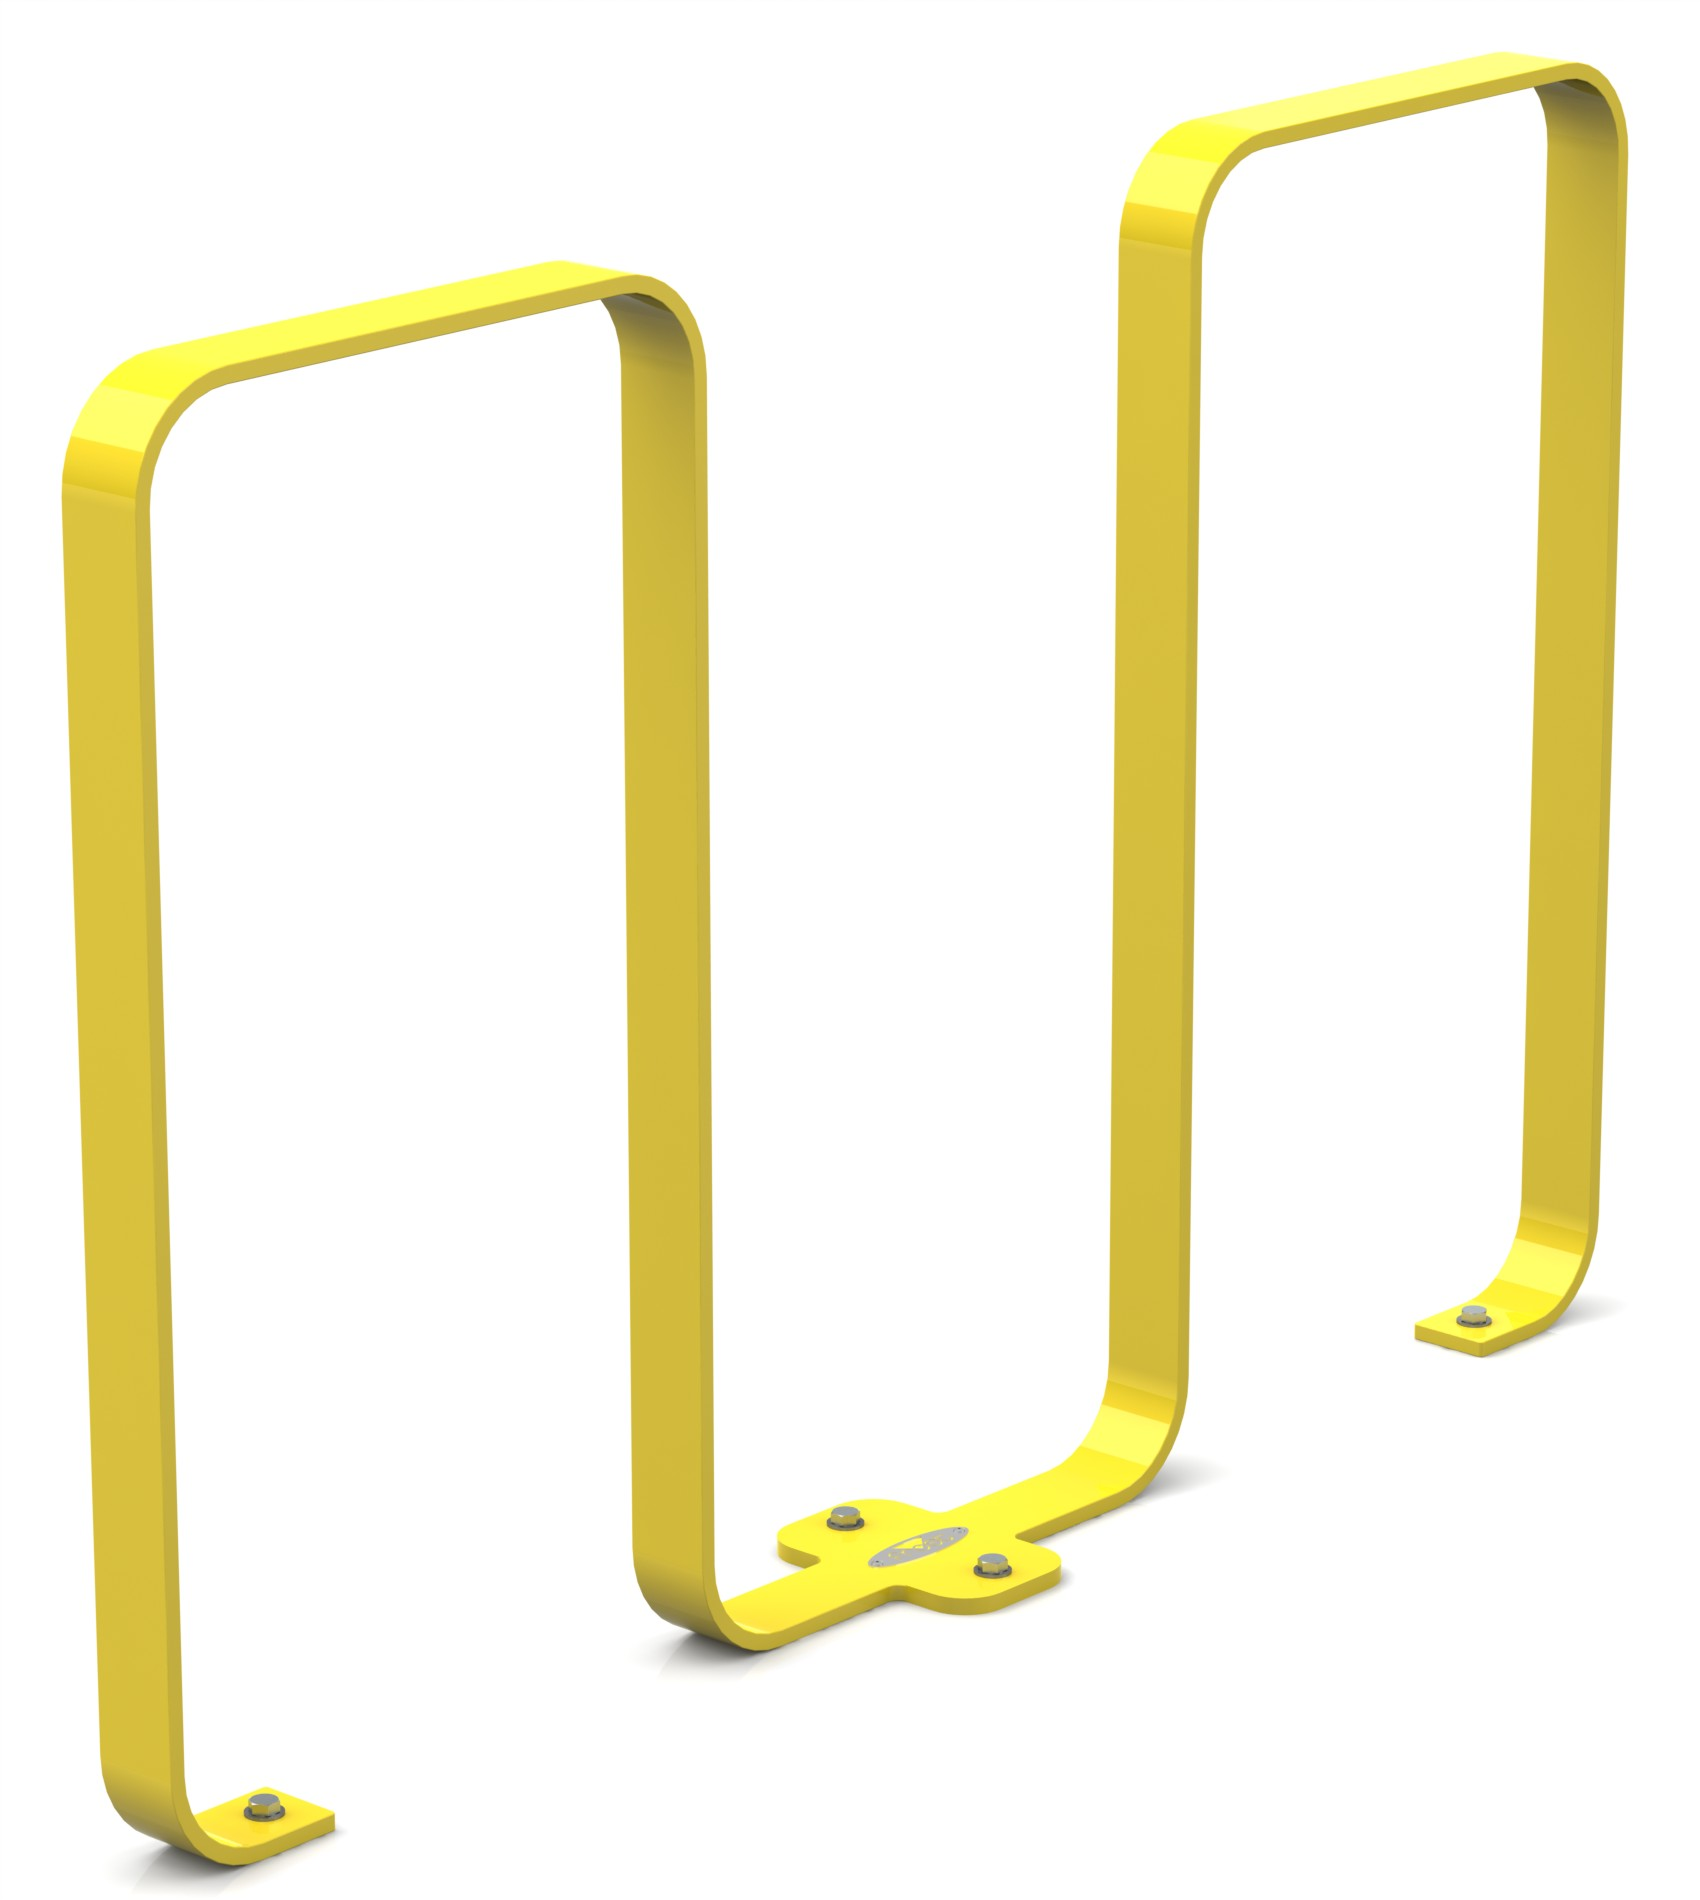 Frost 2080 - Linguini bike rack yellow.JPG